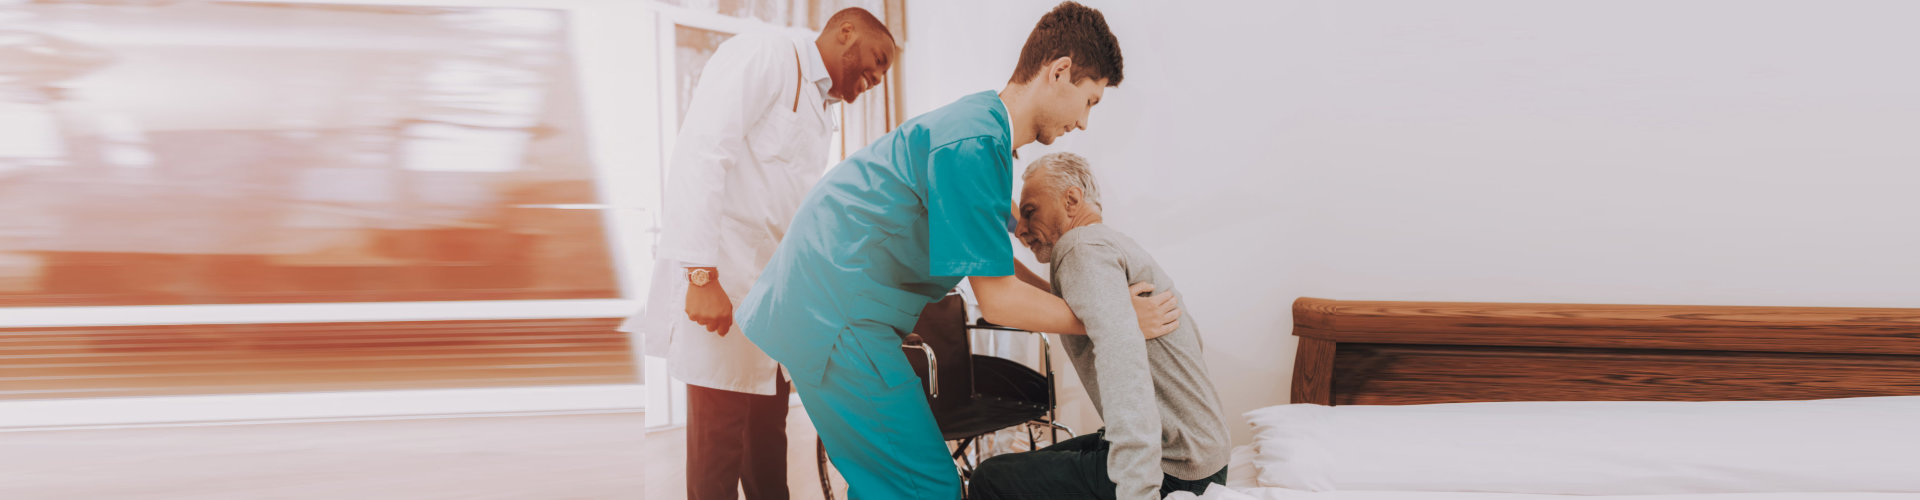 male doctor and nurse helping the old man